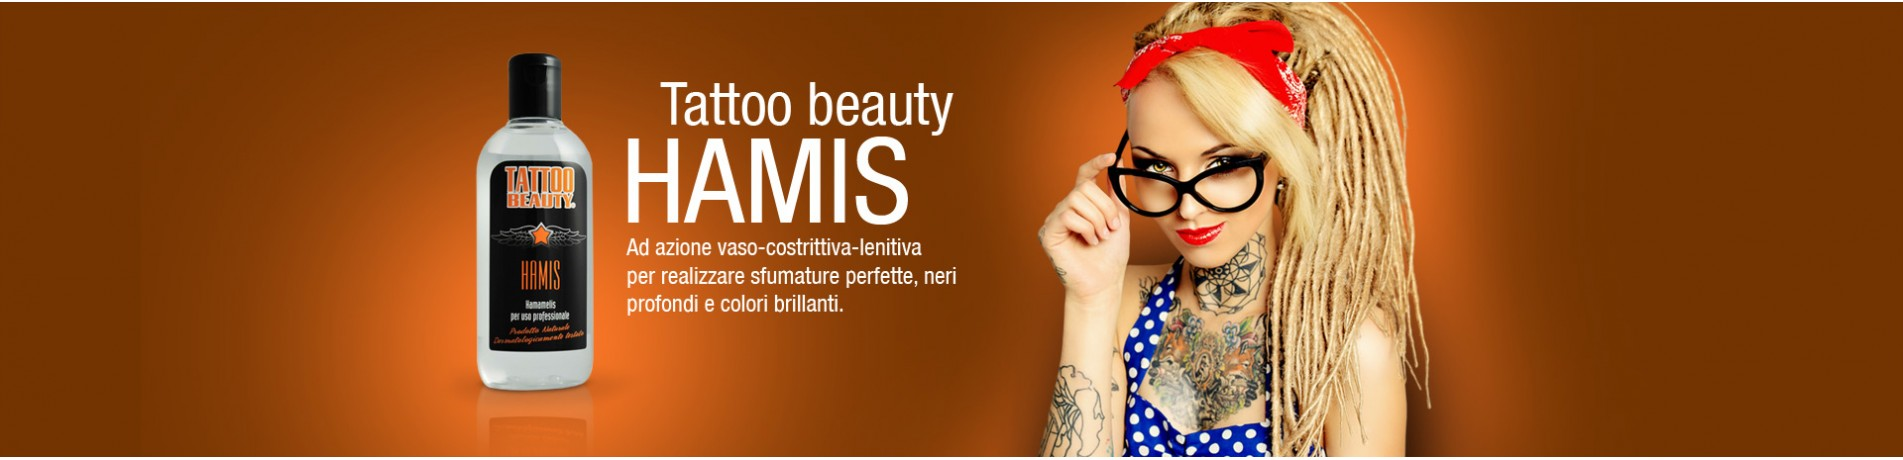 tattoo beauty hamis